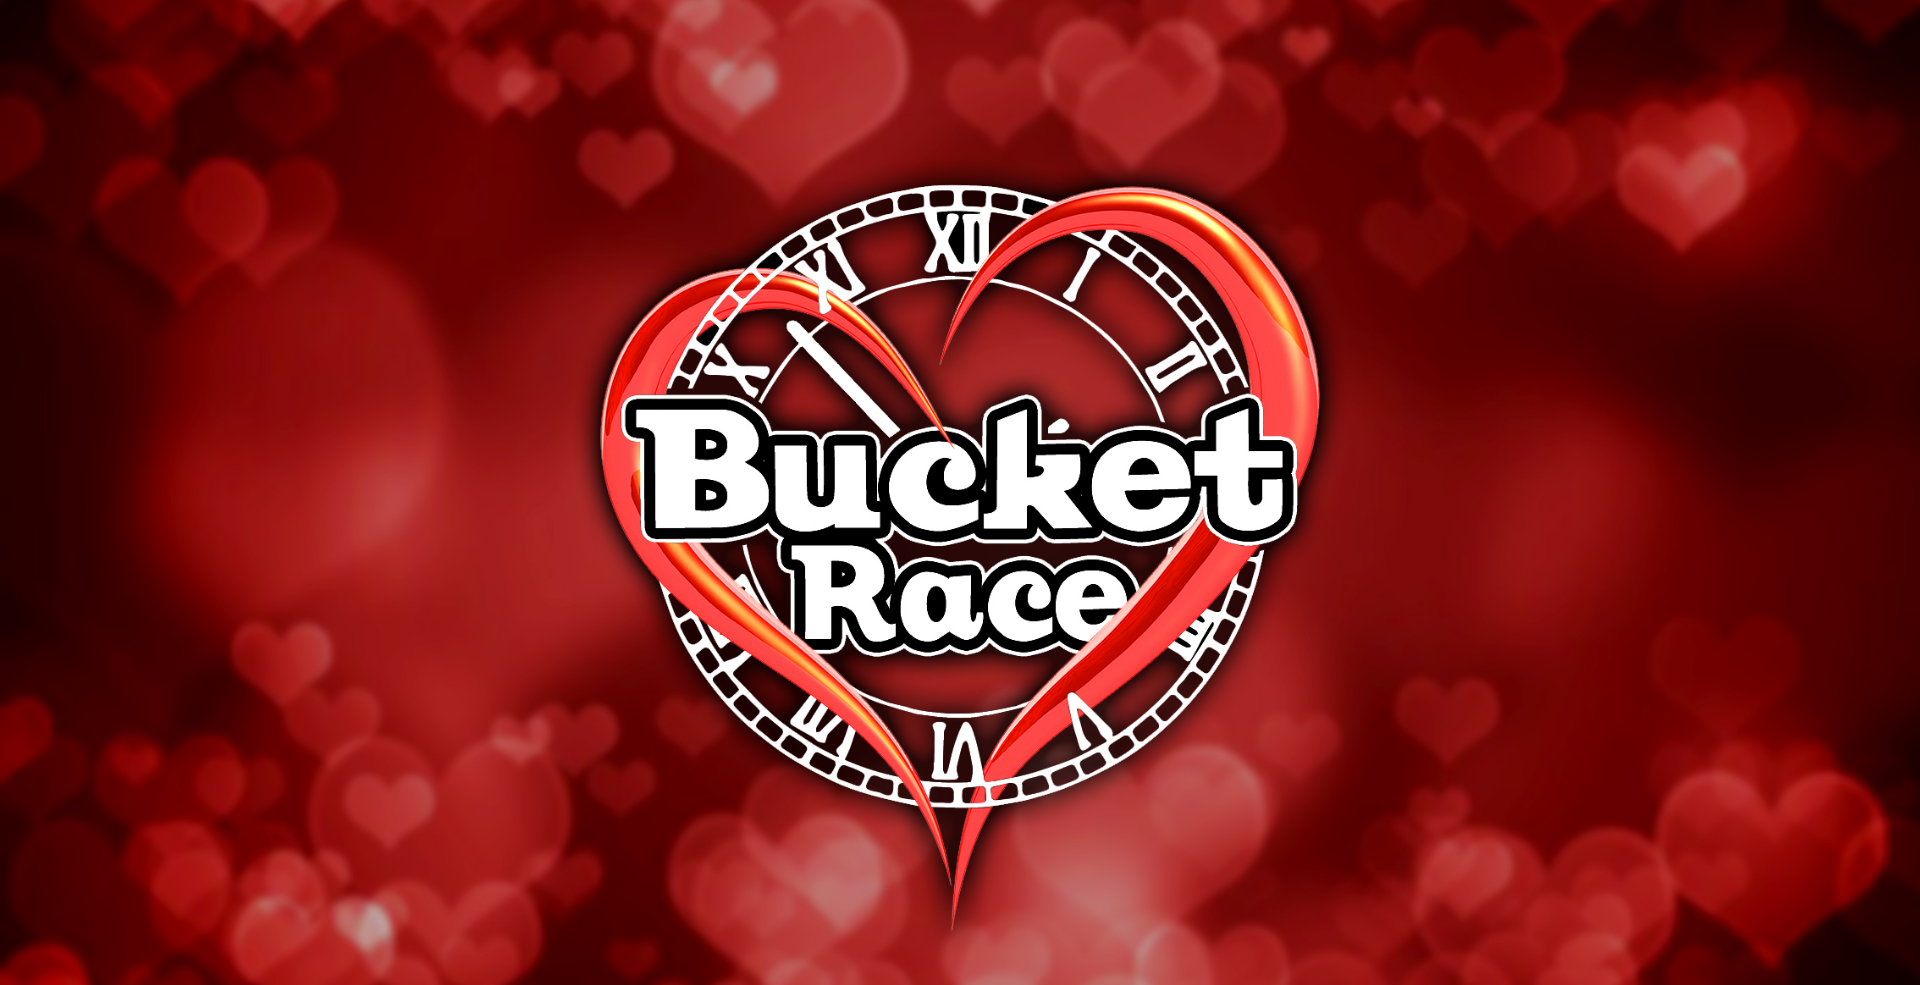 BucketRace (Scavenger Hunt) Valentine's Day Couples Hunt